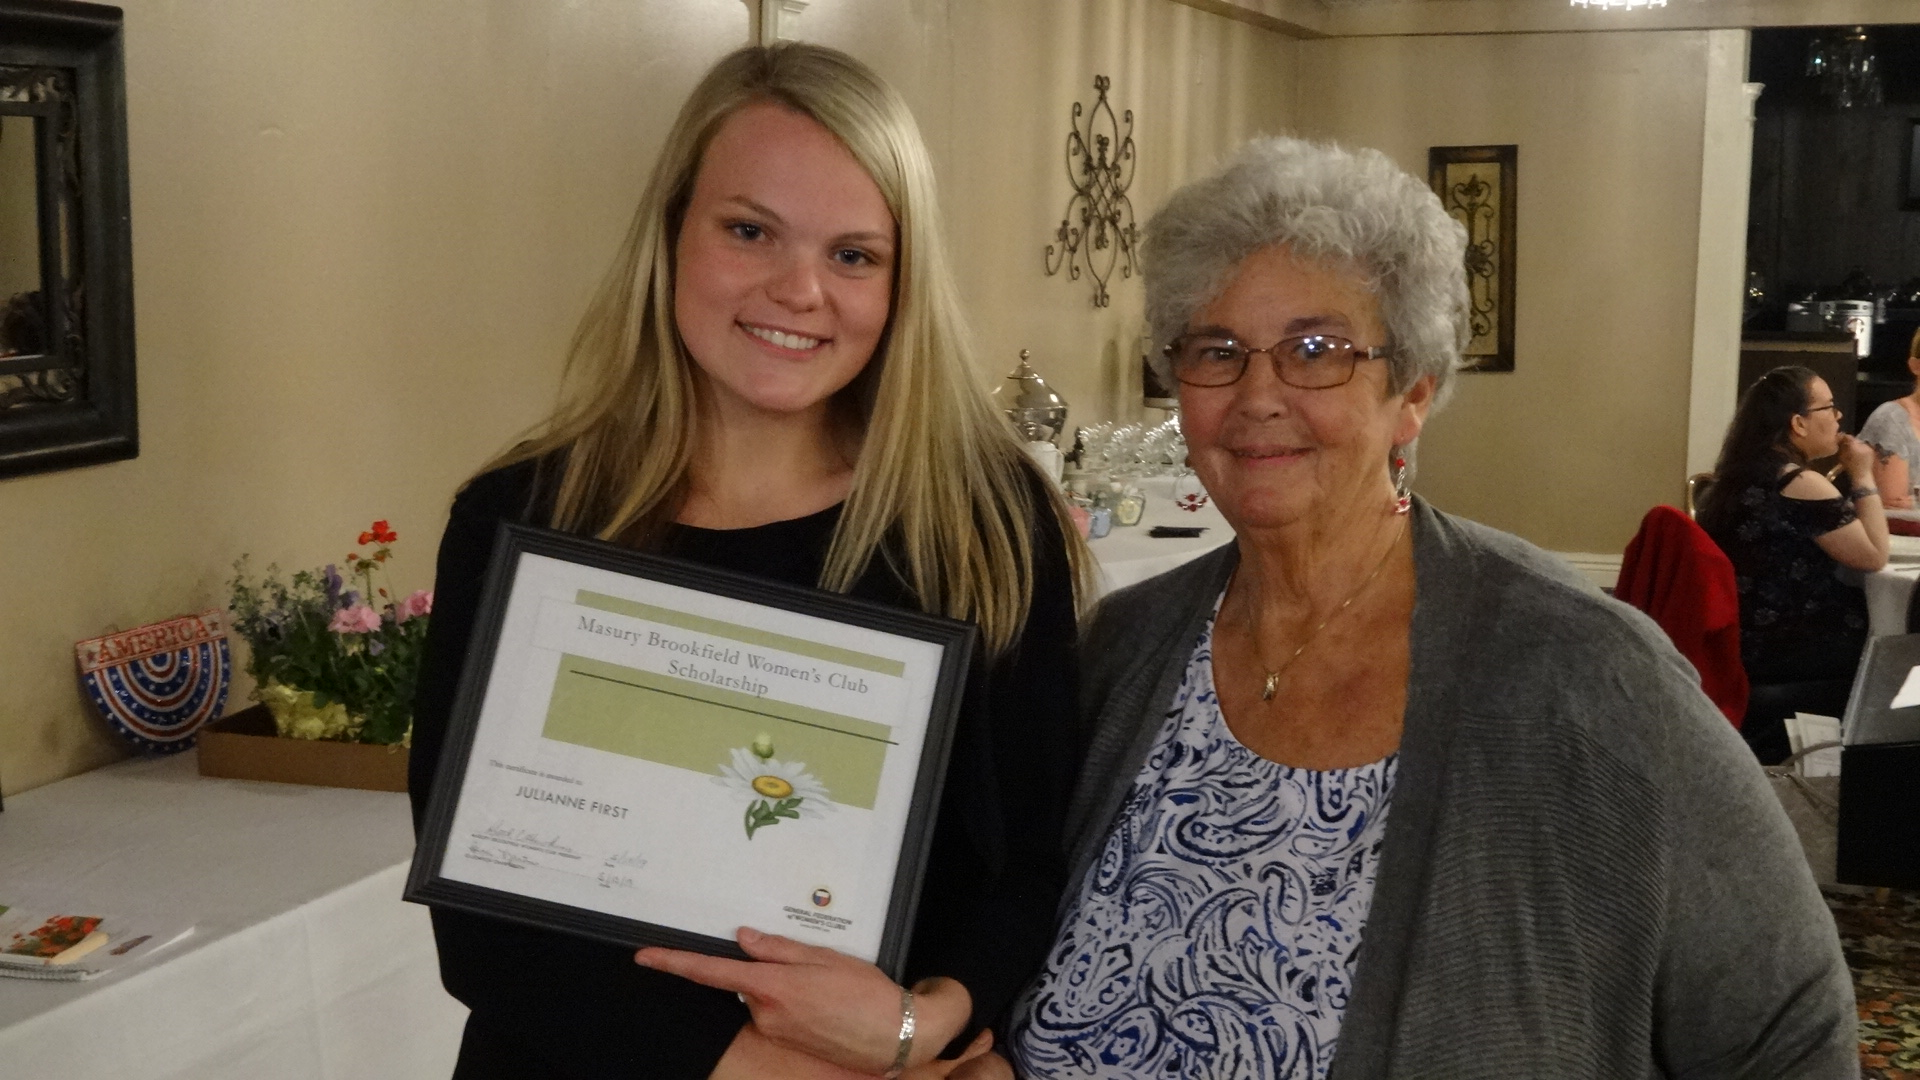 Brookfield High School senior Julianne First holds the certificate she received for winning the Masury-Brookfield Women's Club scholarship. She was introduced by Mary Schmidt, at right.